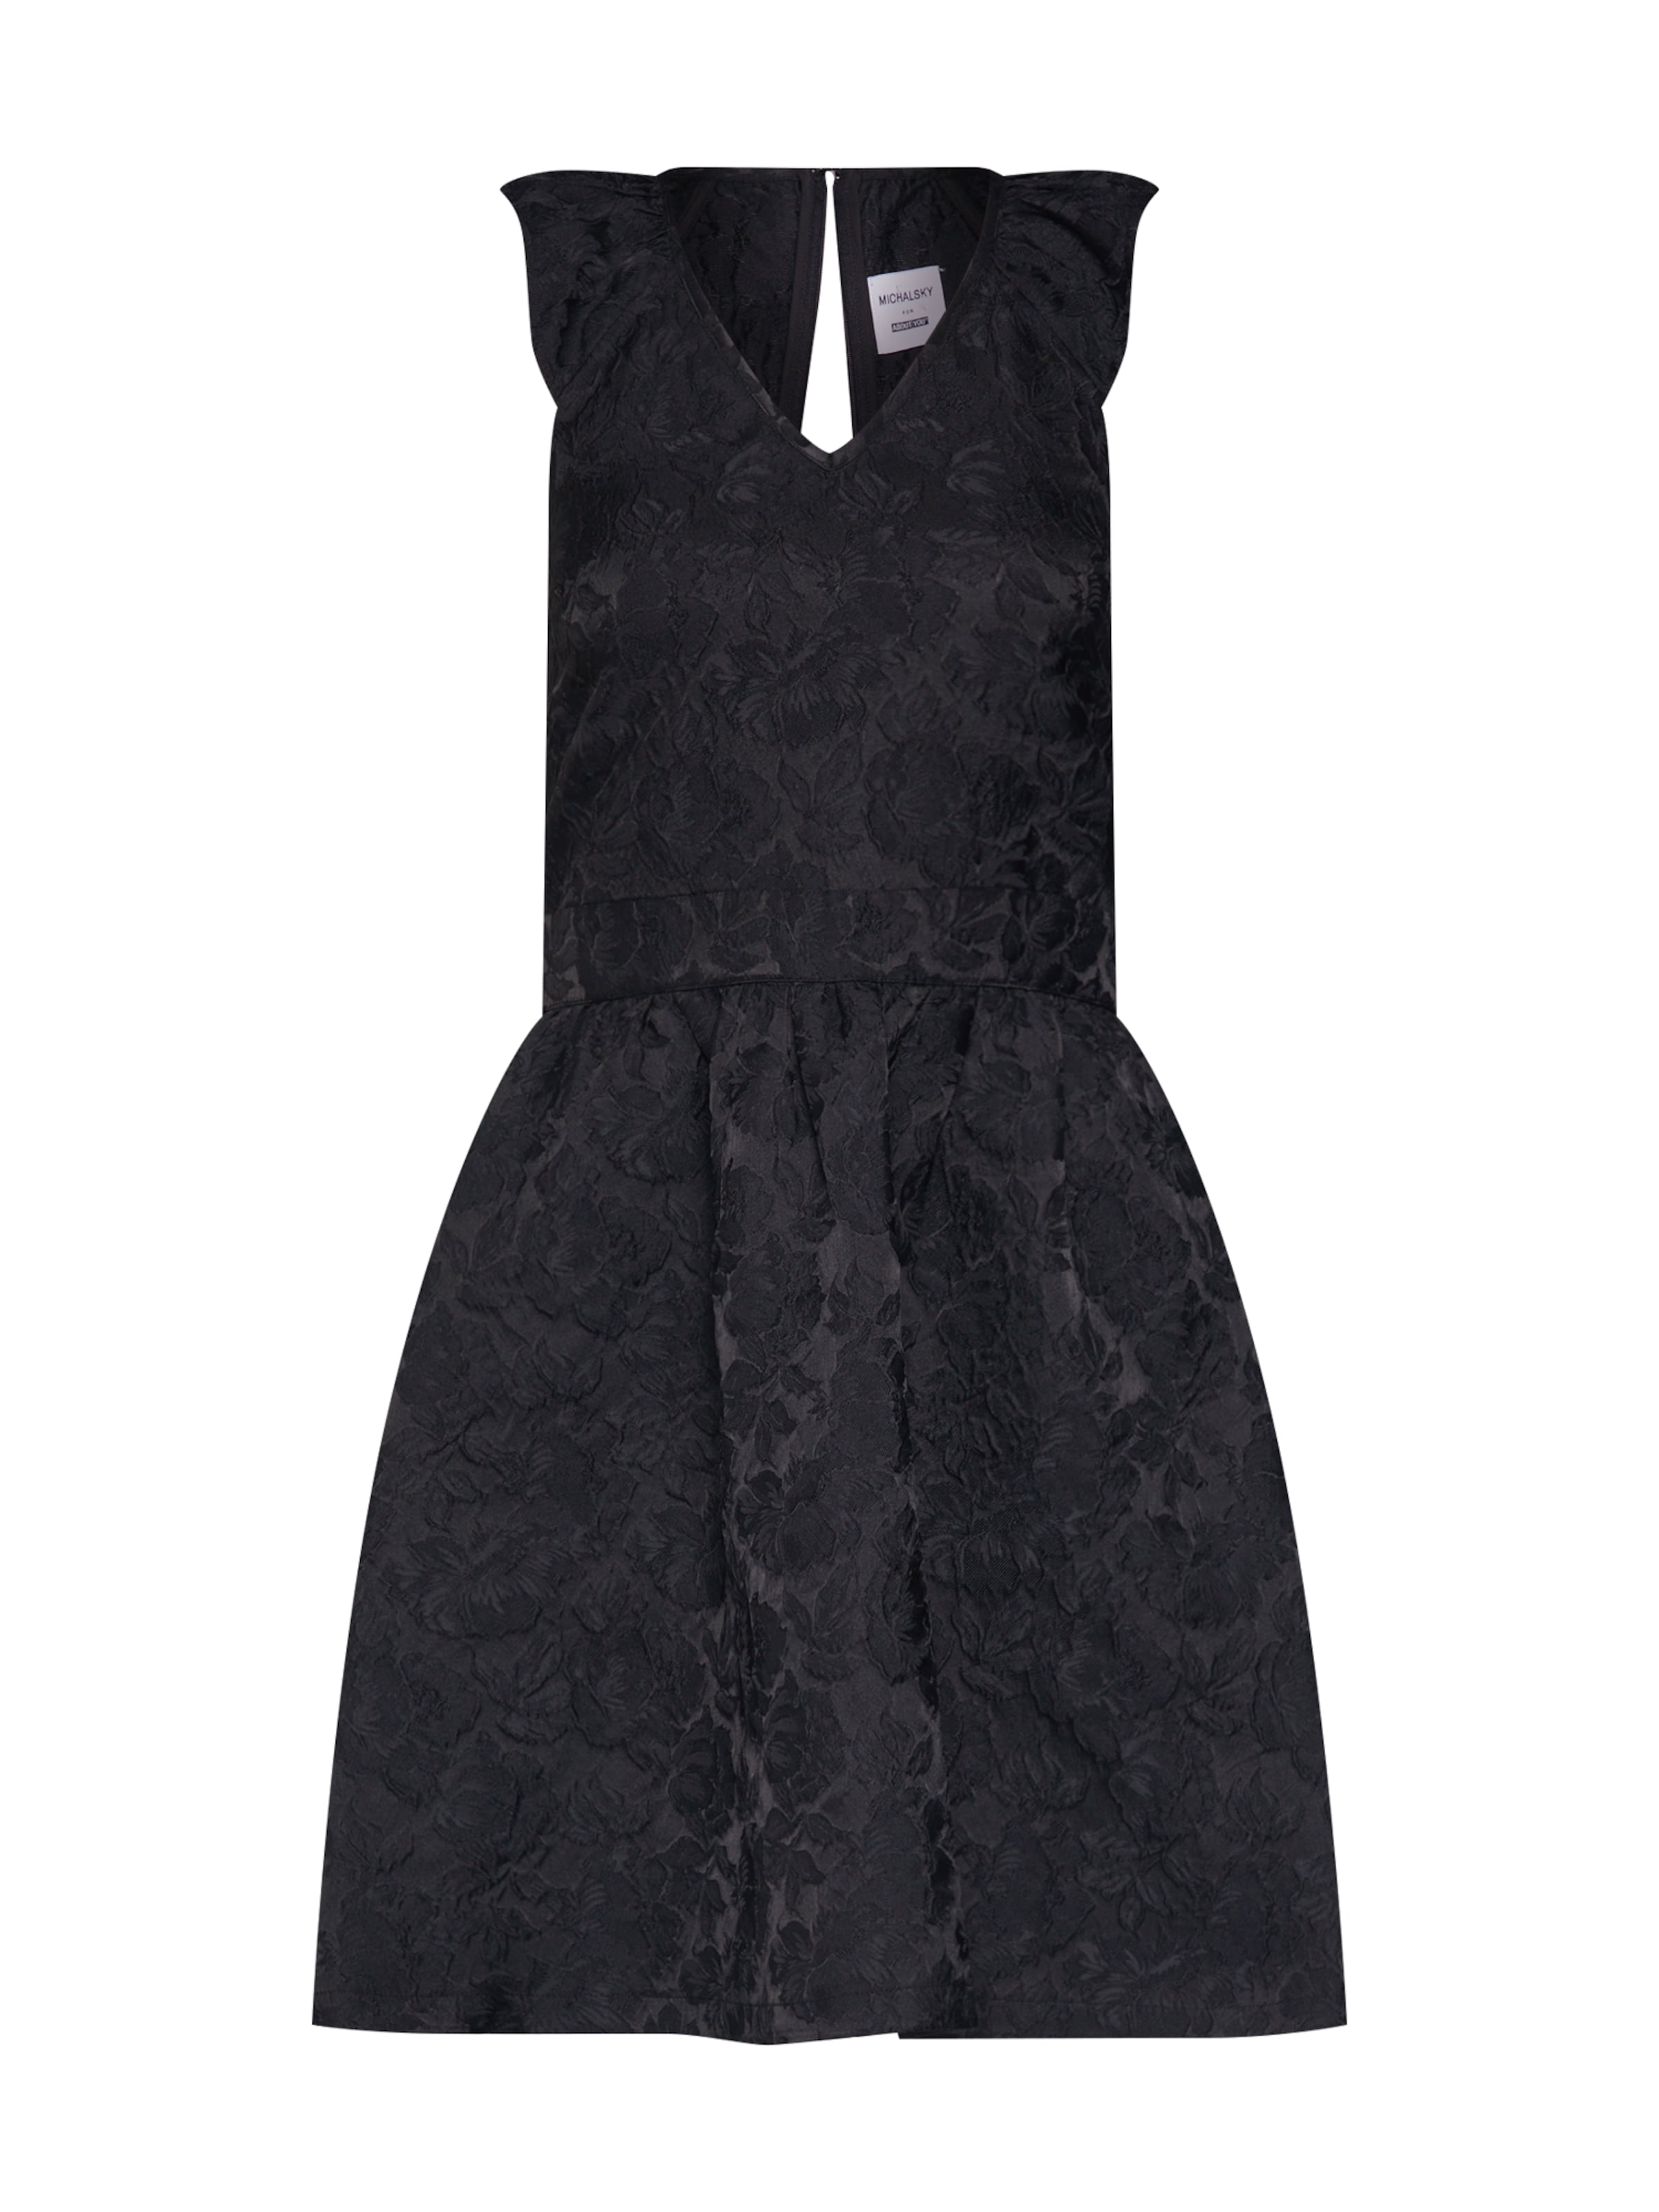 Robe En Michalsky Noir You For About 'fenja' E9HW2IYeD